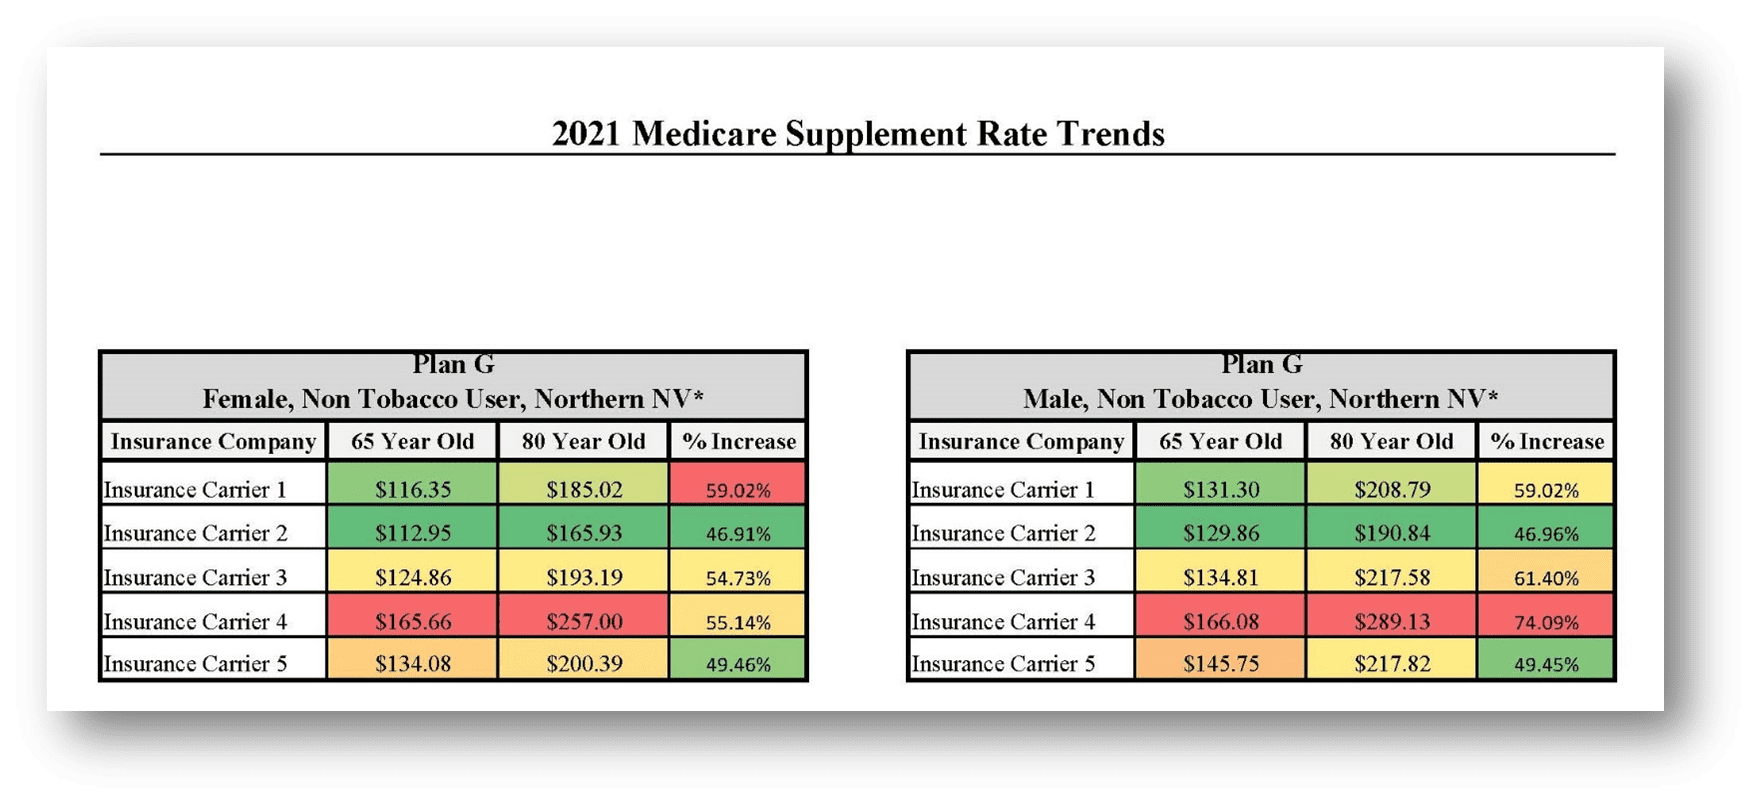 Medicare Supplement Rate Trends